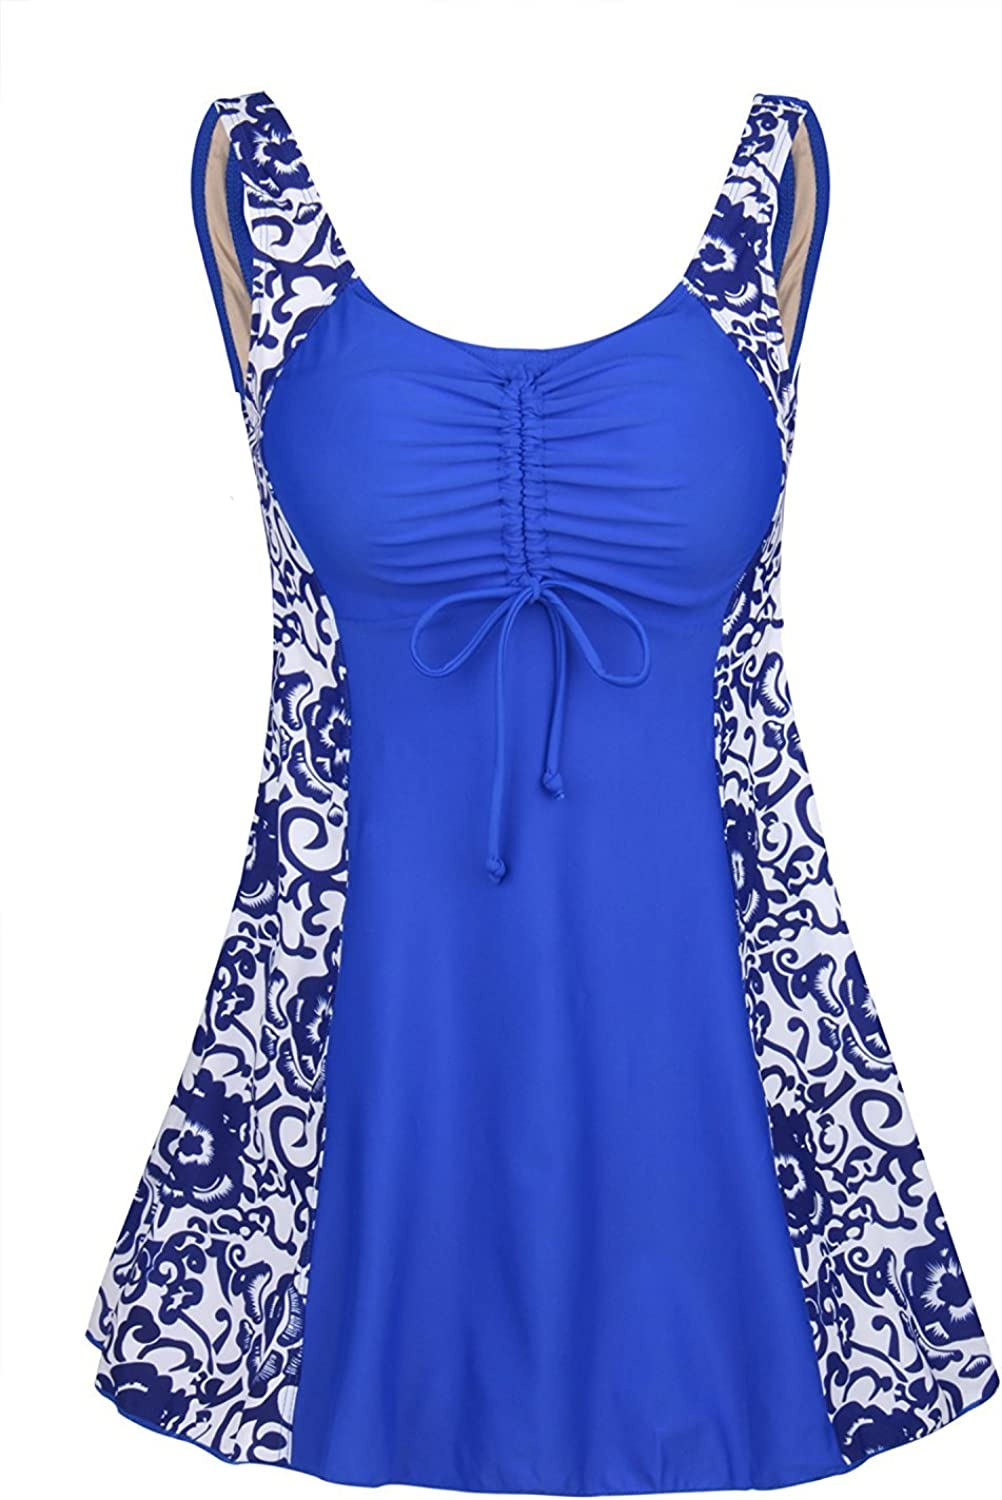 Ecupper One Piece Floral Swimwear Plus Size Swimsuits Cover Up Swimdress for Women